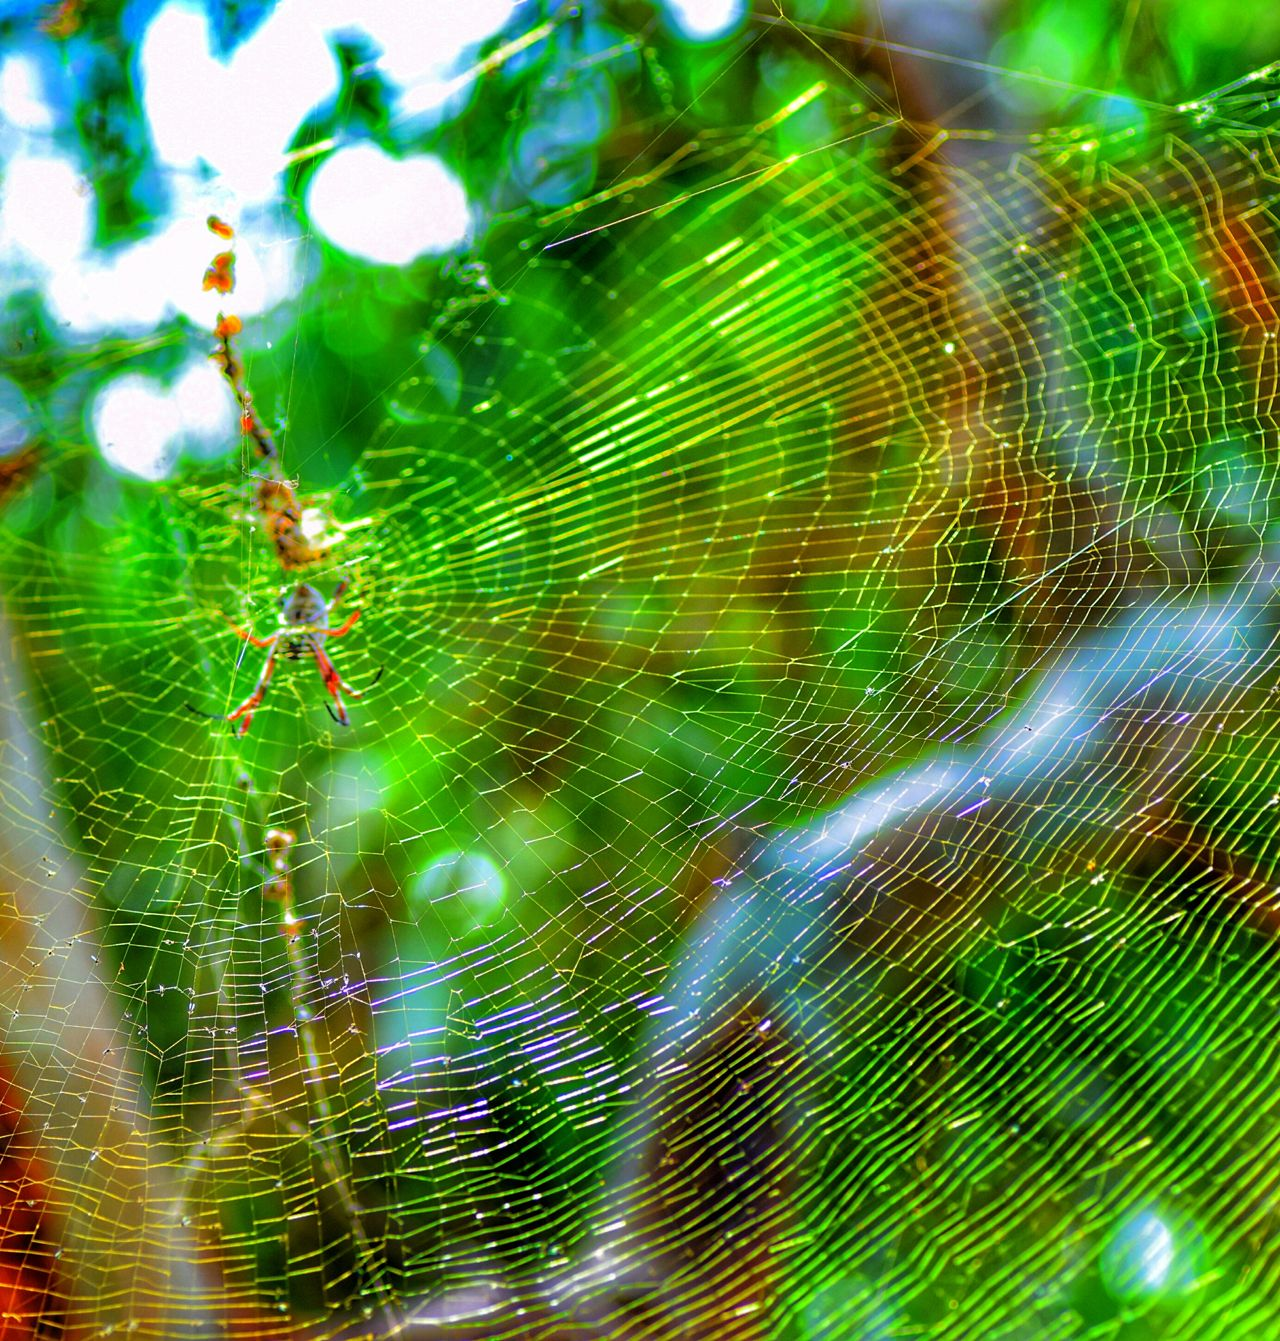 Marden Reserve Marden South Australia. Close-up Spider Web Nature Animal Themes Spider No People One Animal Outdoors Fragility Day Beauty In Nature Animals In The Wild Web Backgrounds Insect EyeEm Nature Lover Eye4photography  Taking Photos Eye Em Nature Lover Eyem Gallery Macro_collection Nature Photography Beauty In Nature Nature_collection Close Up Photography